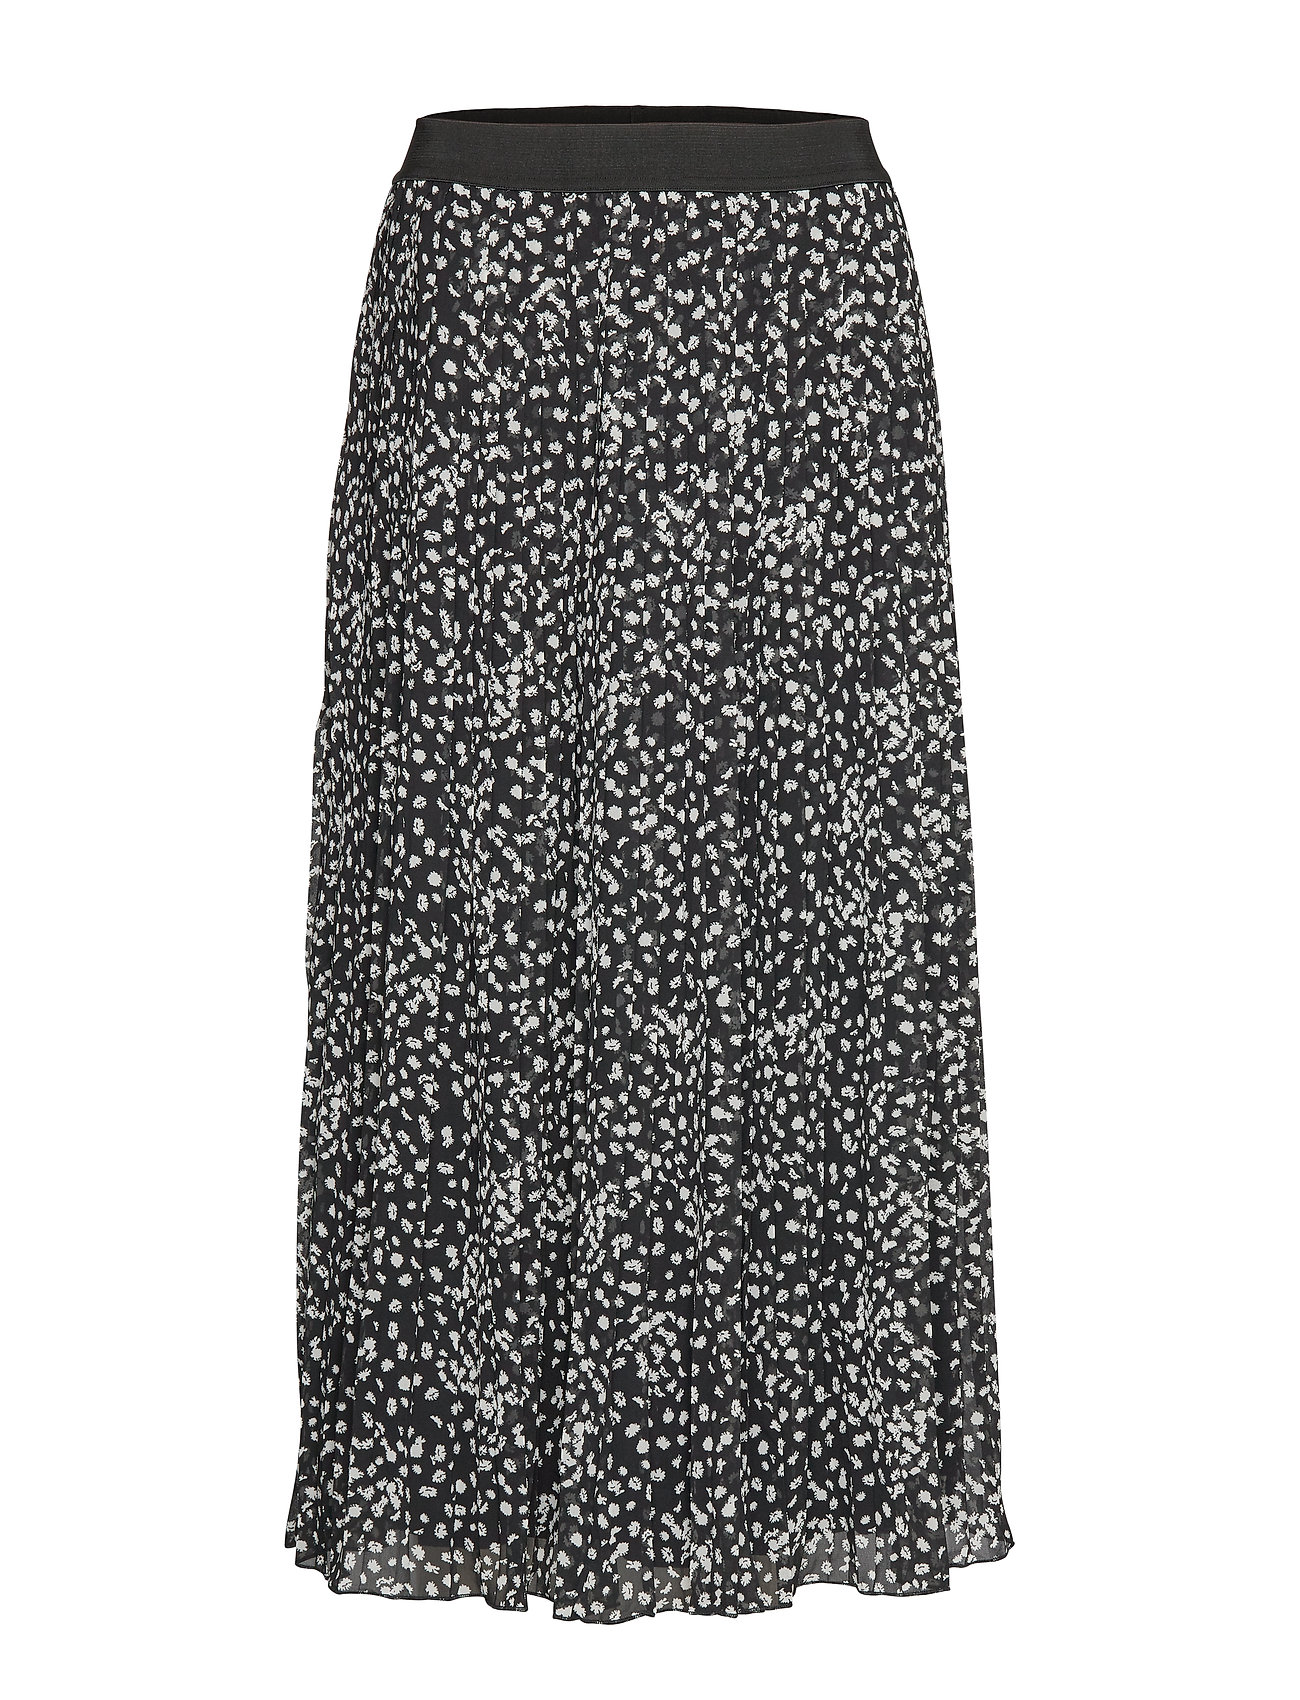 Soft Rebels Sally Midi Skirt print - FLORA MONOCROME PRINT